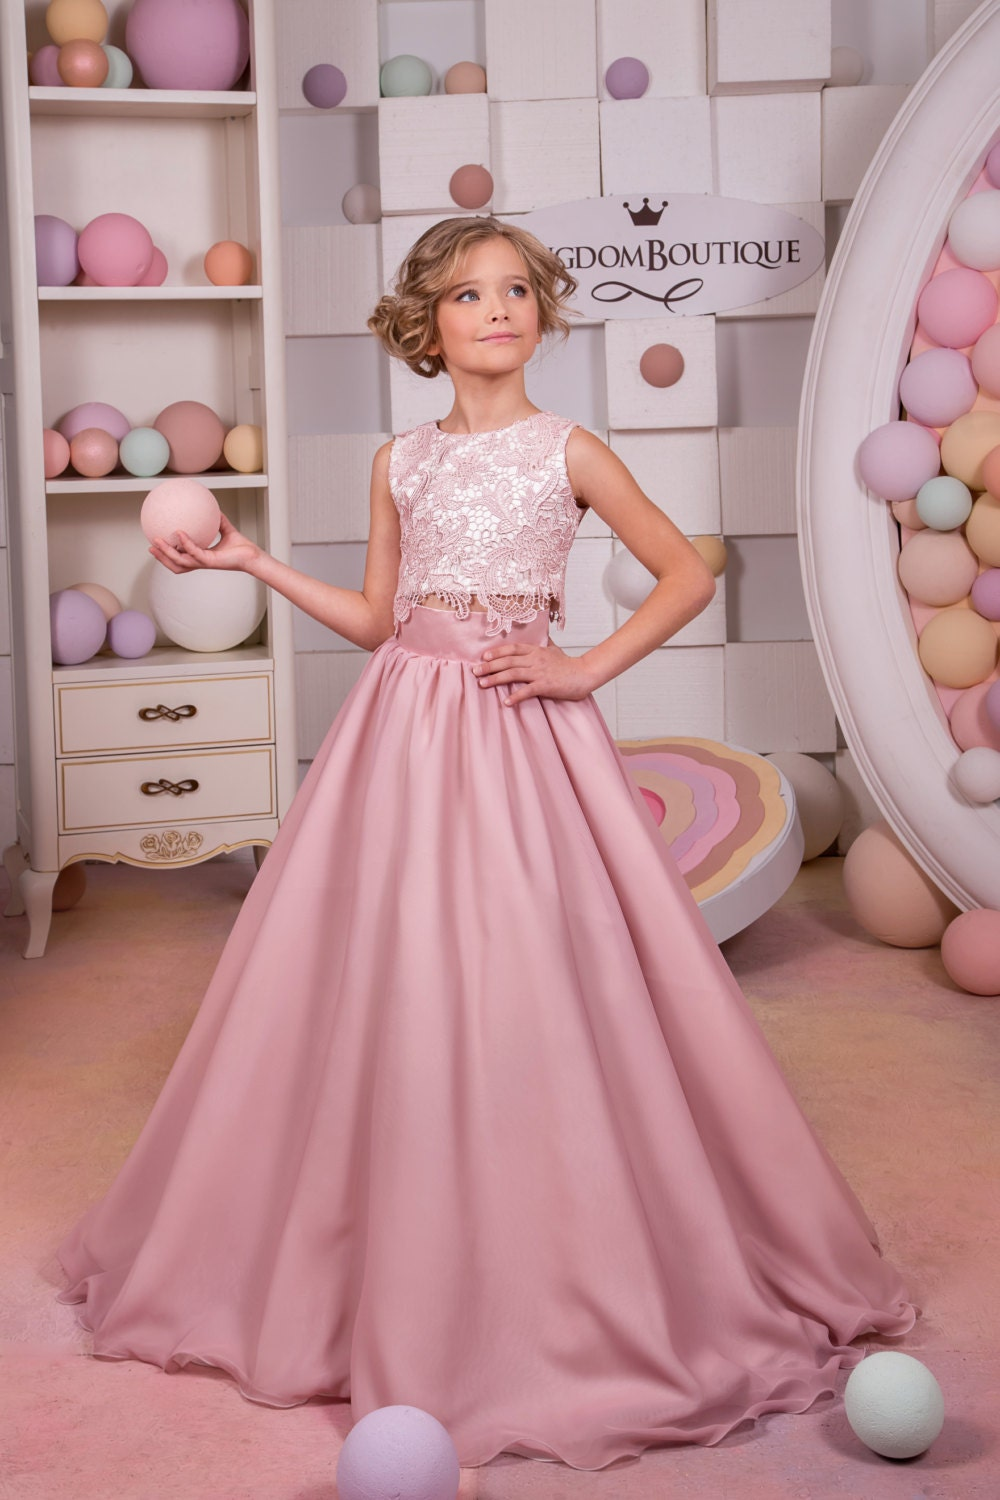 Blush Pink Lace Satin Flower Girl Dress Wedding Party